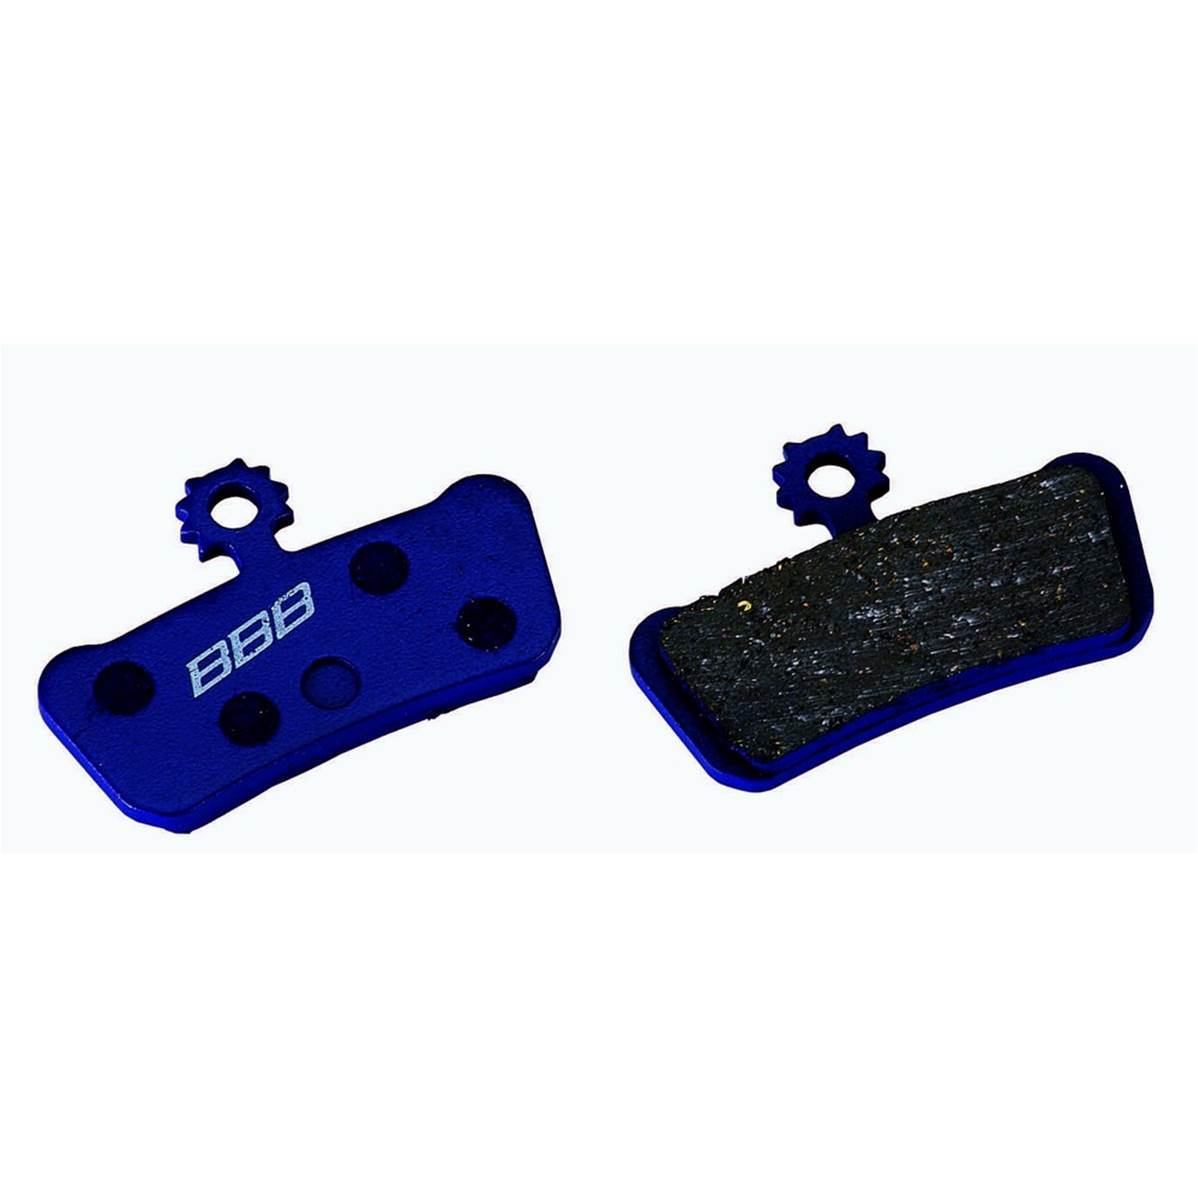 BBB Brake Disc Pads Avid Sram X0 Trail